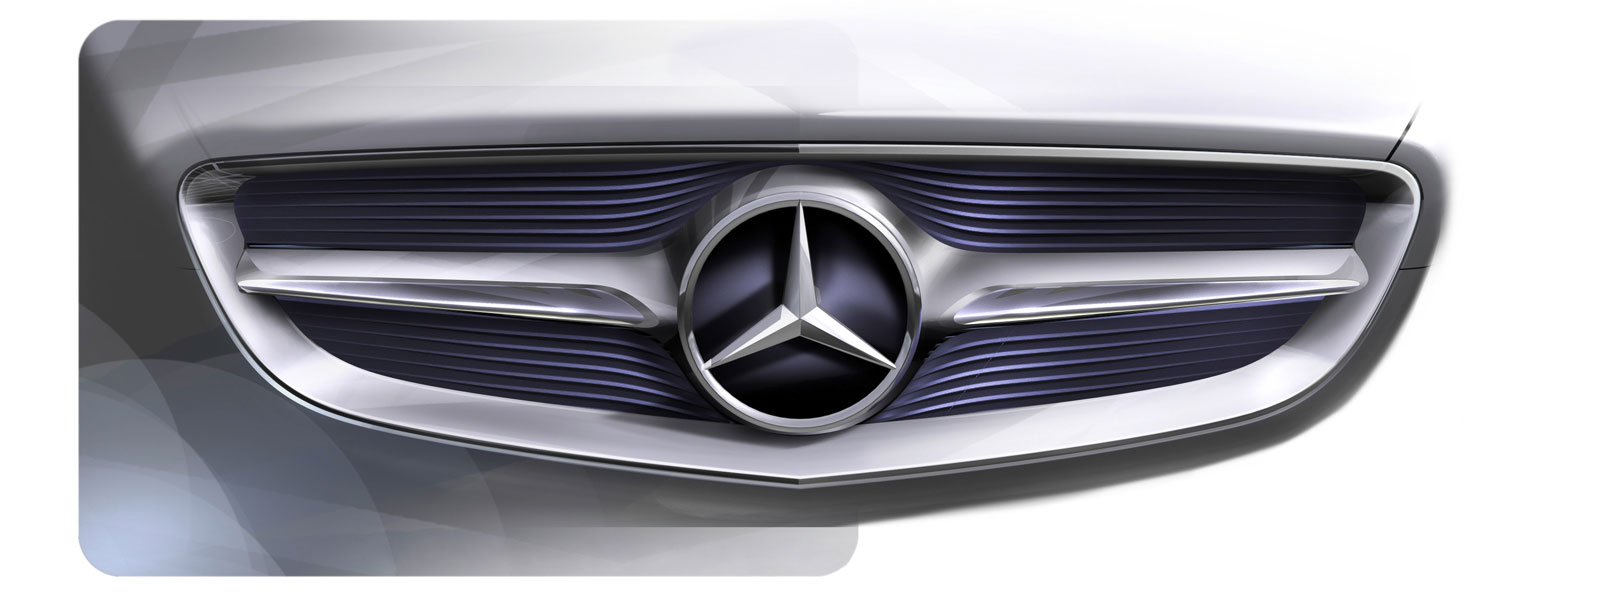 Mercedes benz f 800 style radiator grille design sketch for Mercedes benz f